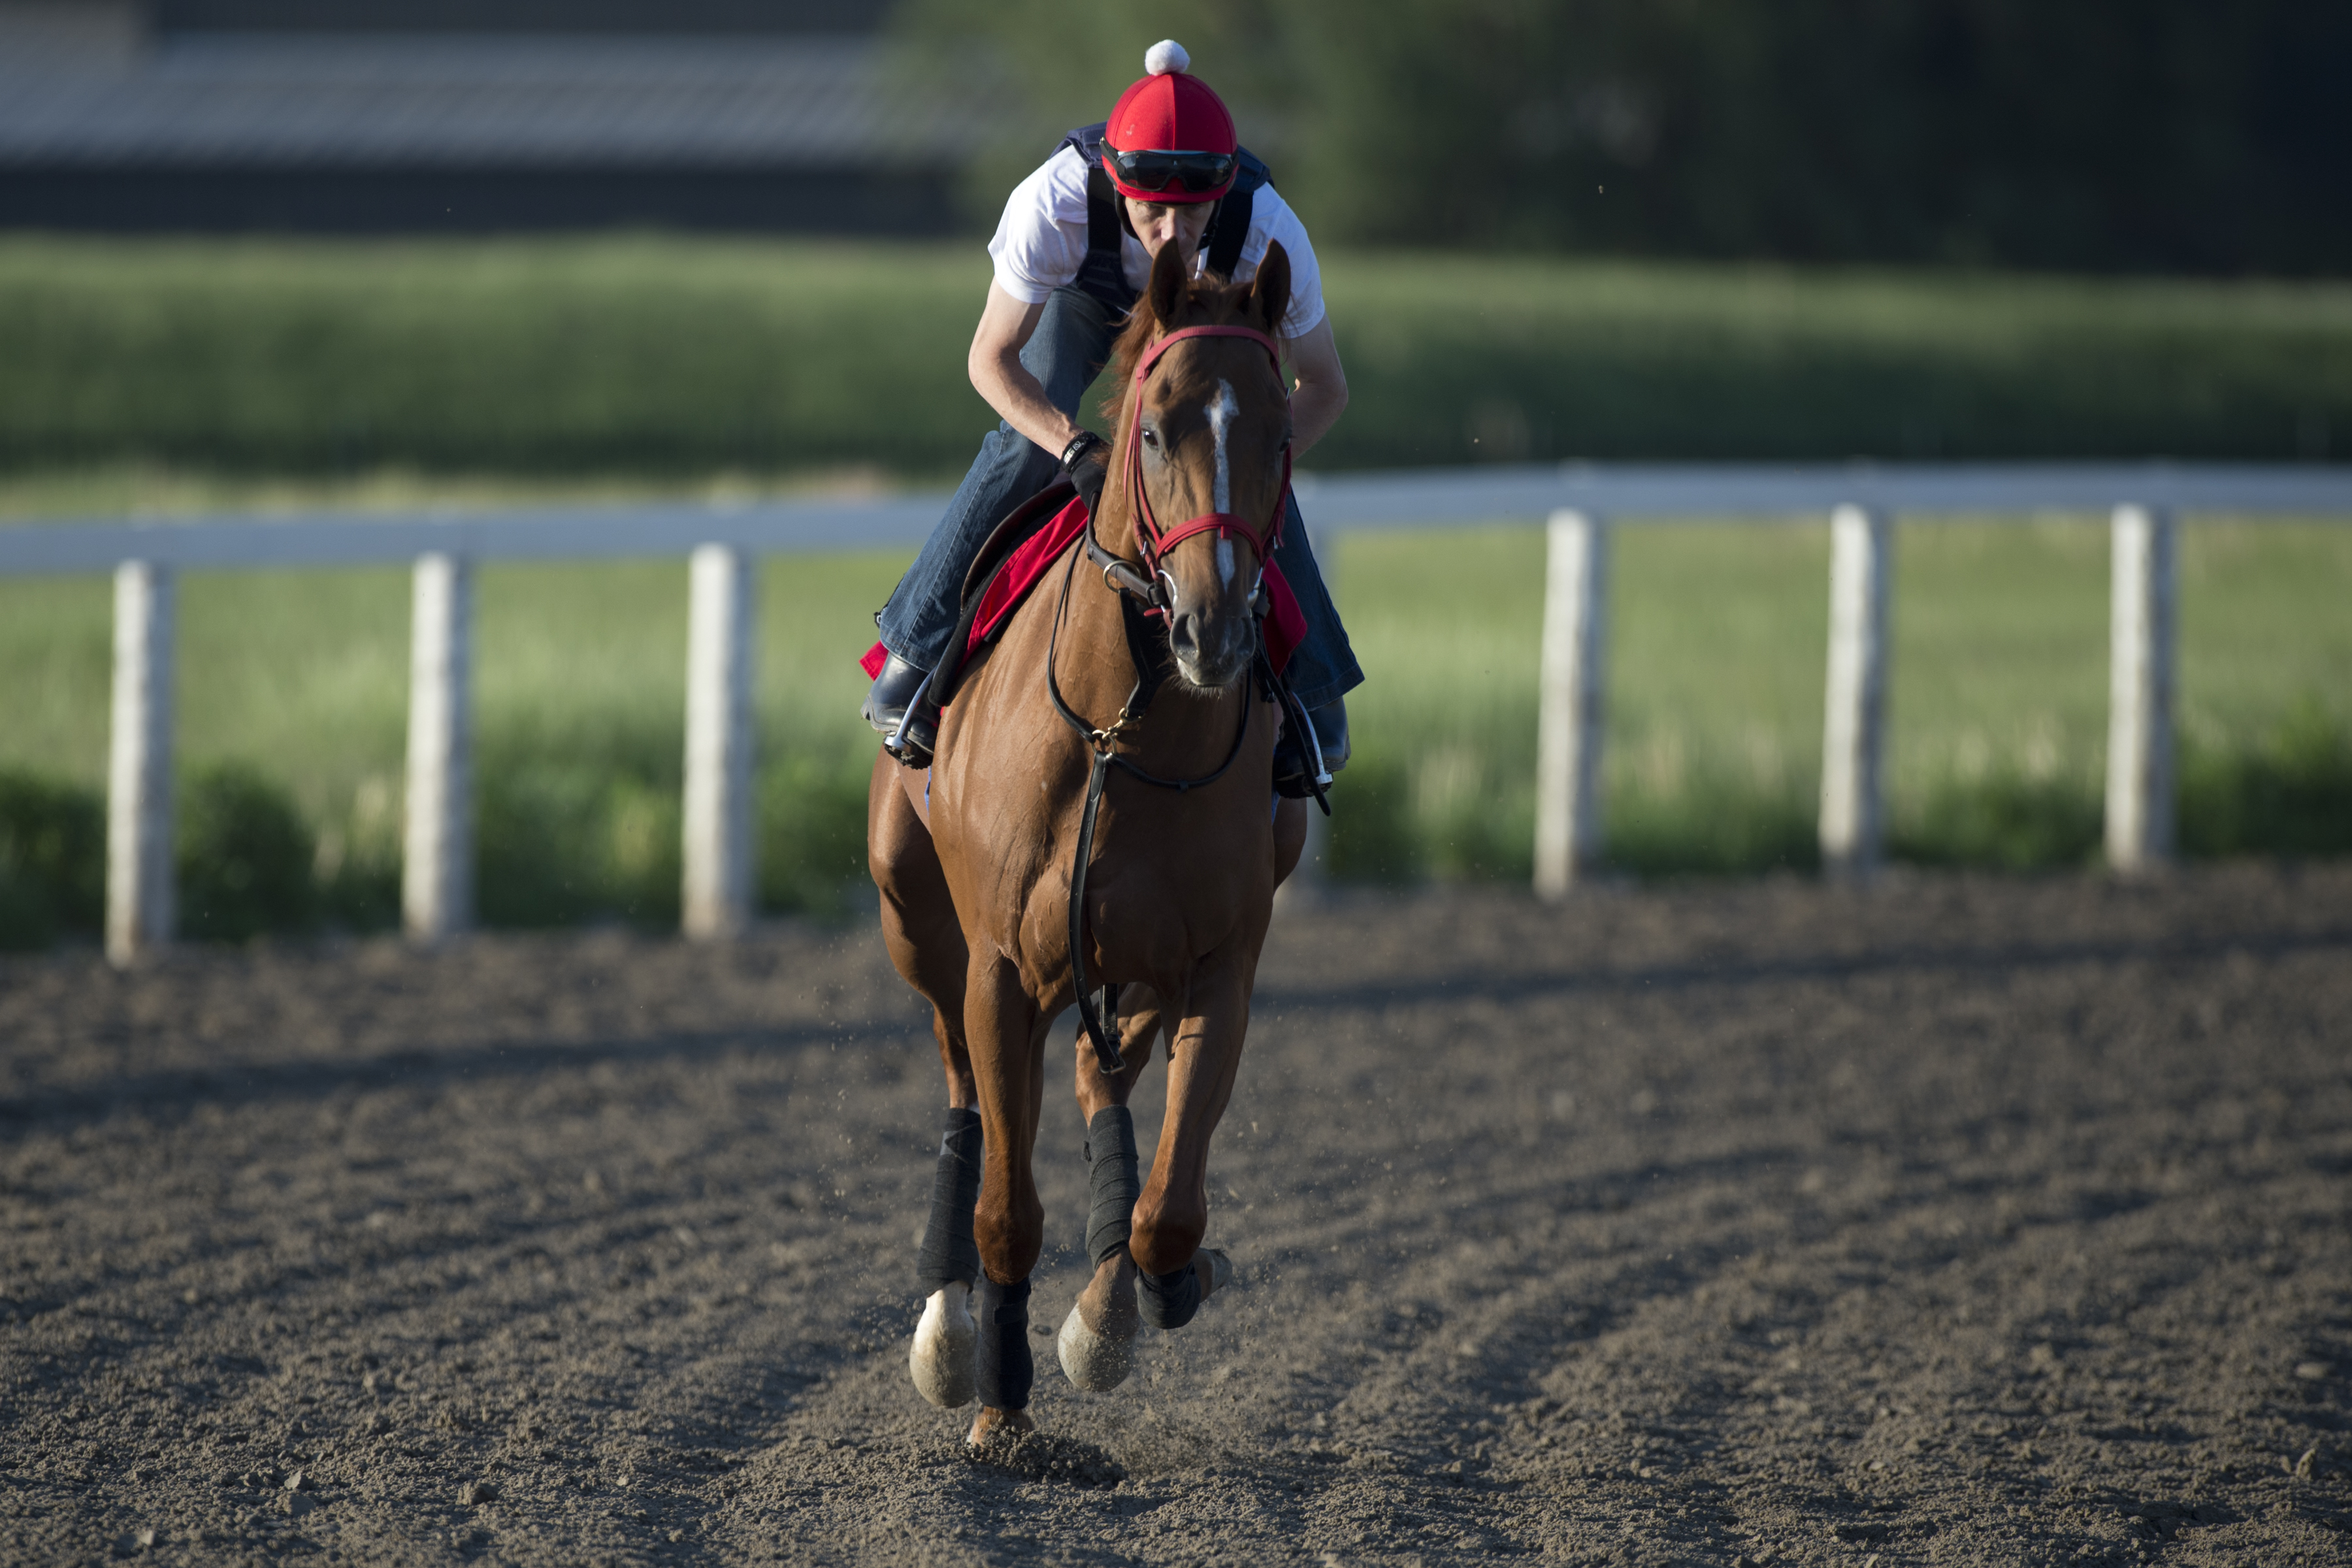 Queen's Plate contender All On Red Photo Credit: WEG/Michael Burns Photo